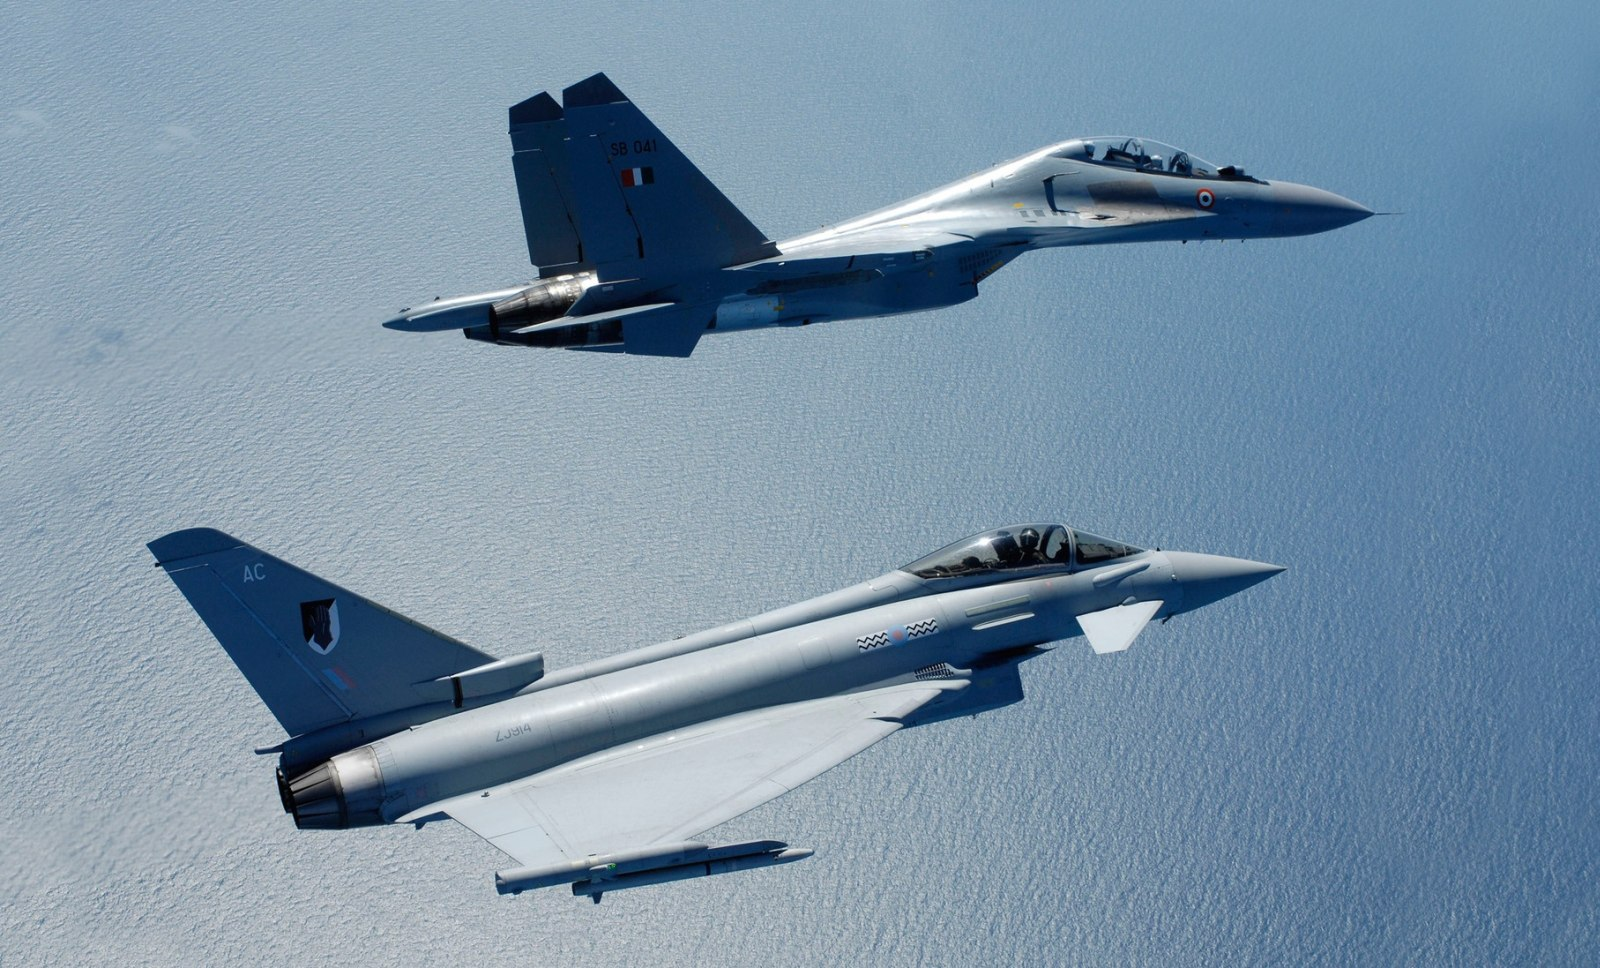 IAF Sukhoi Su-30MKI vs RAF Euro-fighter Typhoon 1